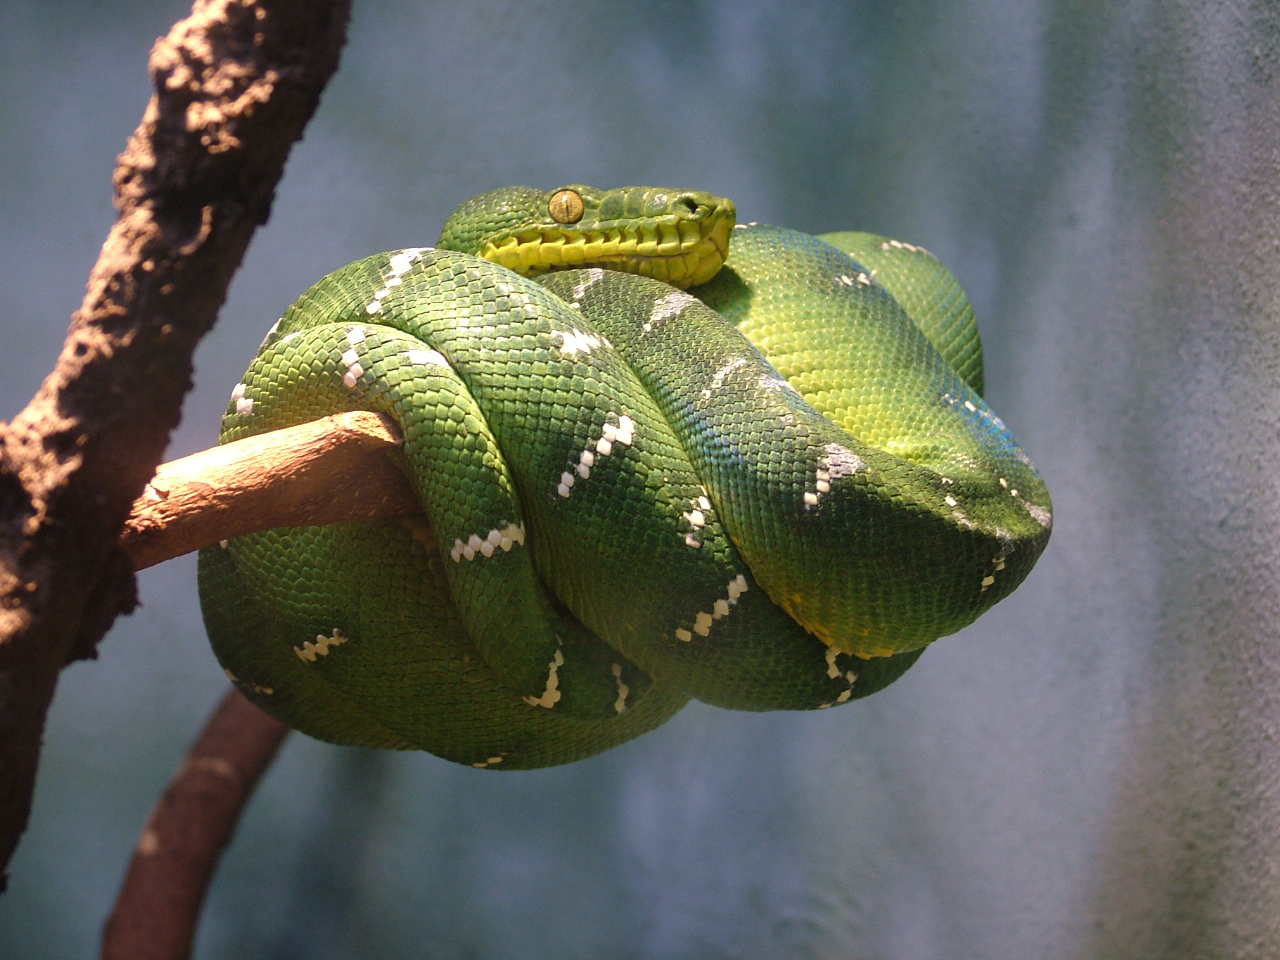 Emerald Tree Boa at Central Park Zoo, New York: NEN Gallery